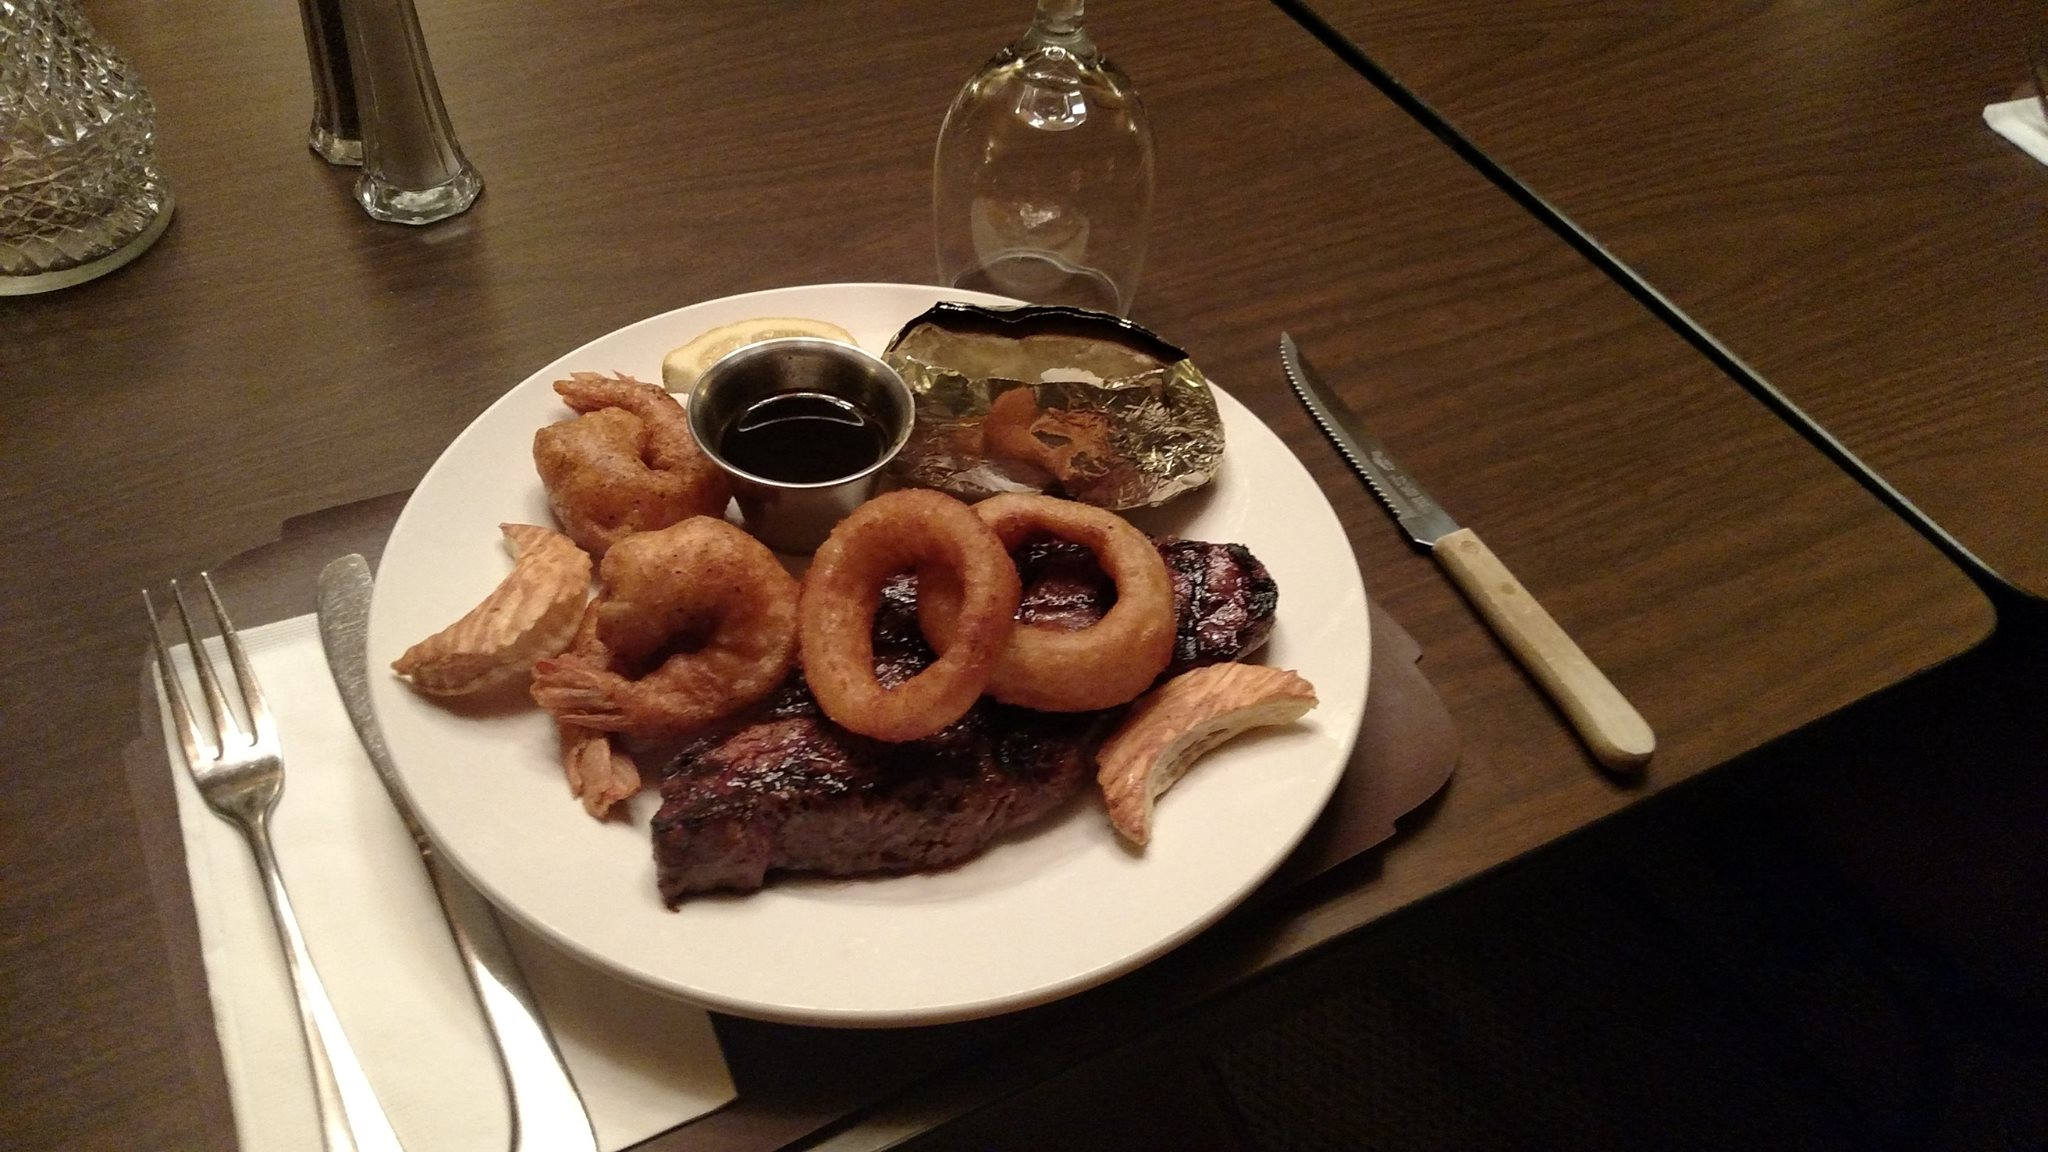 Grilled steak served with onion rings